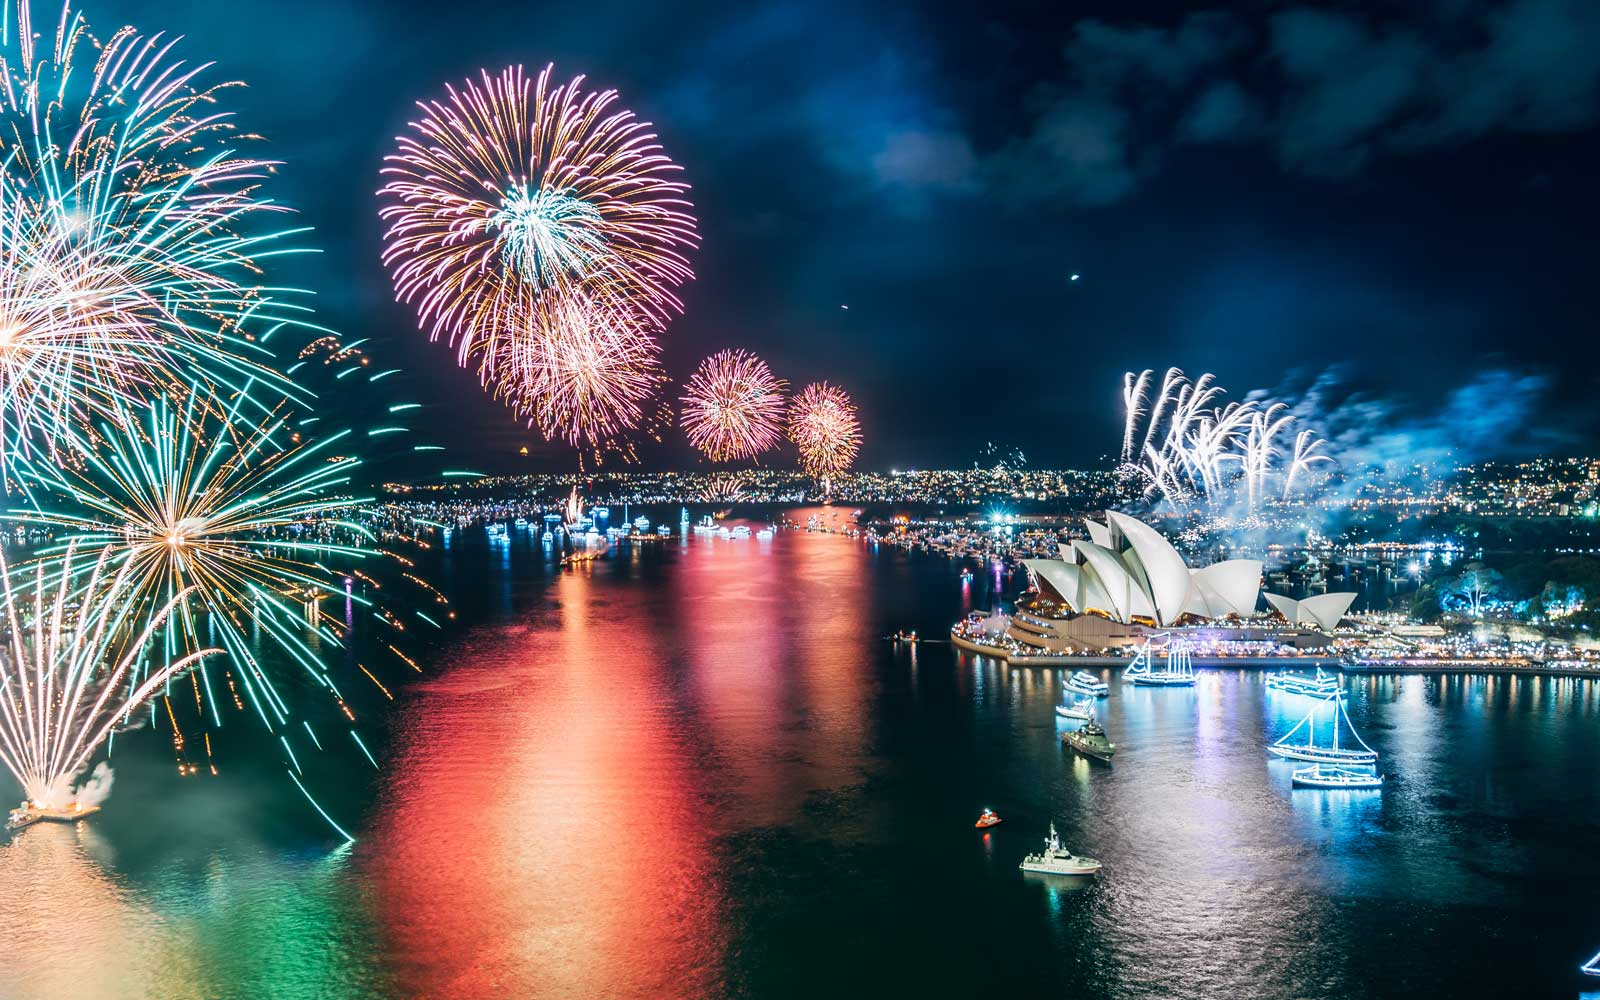 New Year's Eve fireworks in Sydney, Australia